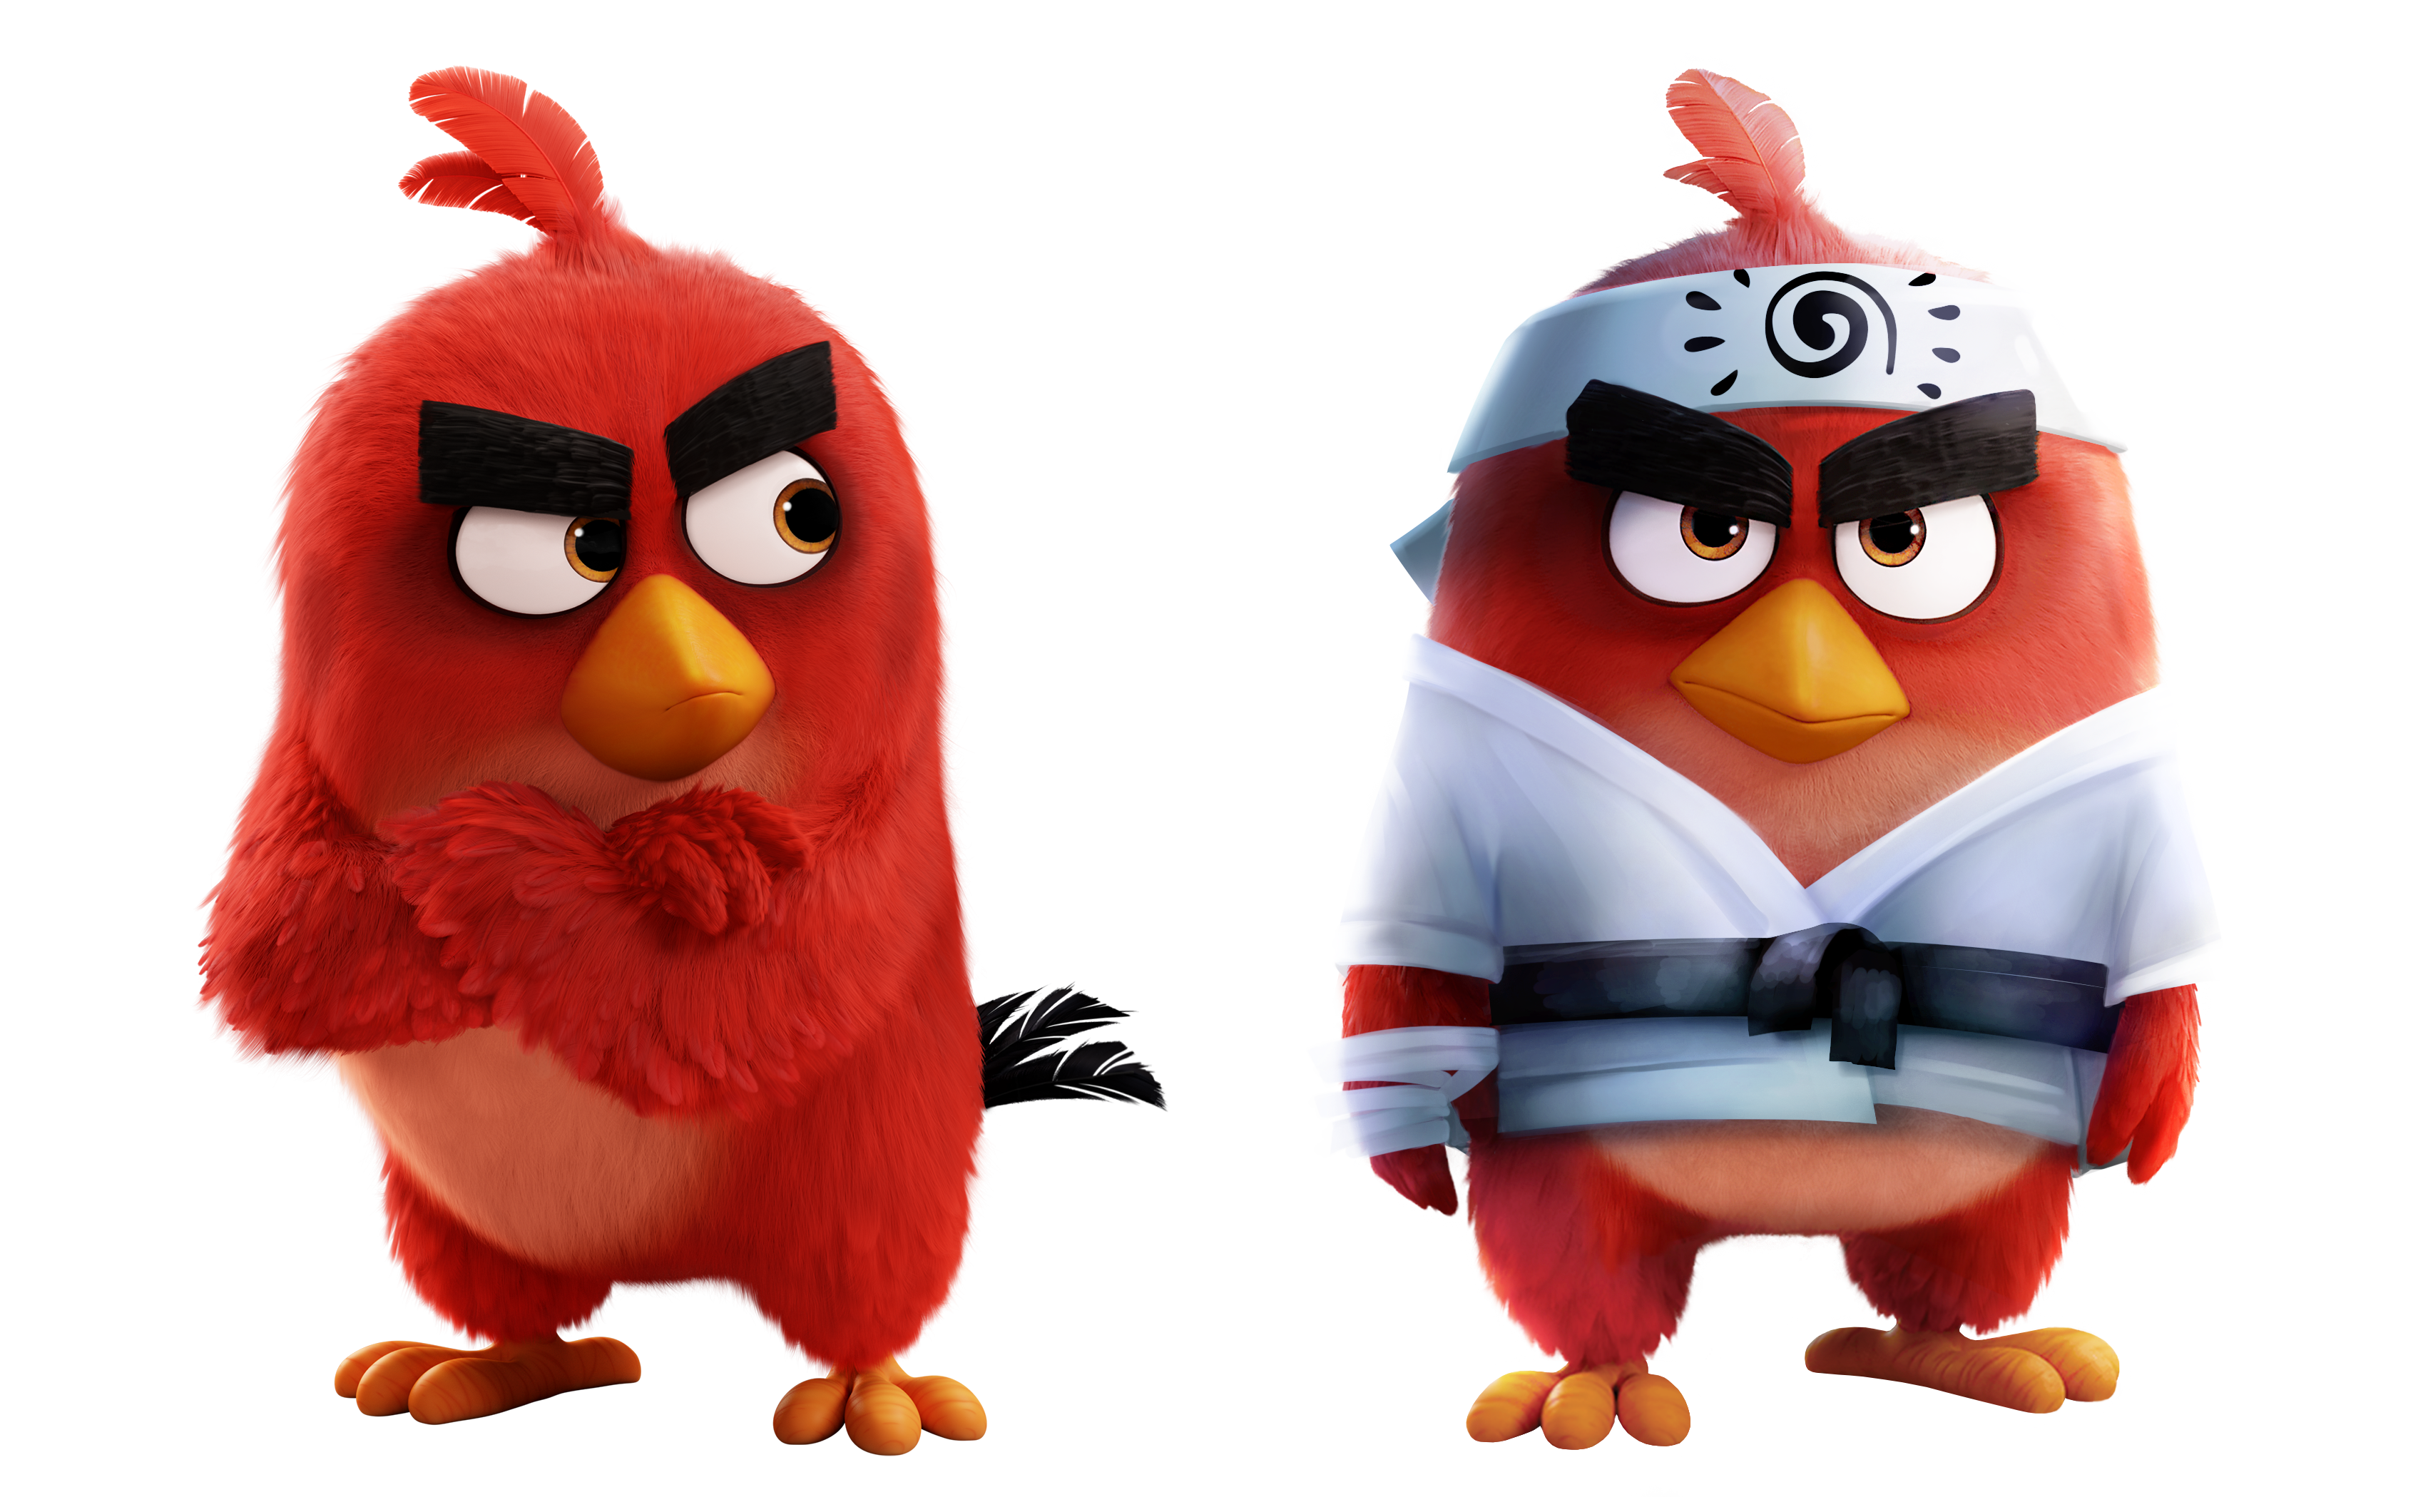 Red Angry Birds Wiki Fandom Red Angry Bird Angry Birds Star Wars Animated Cartoons